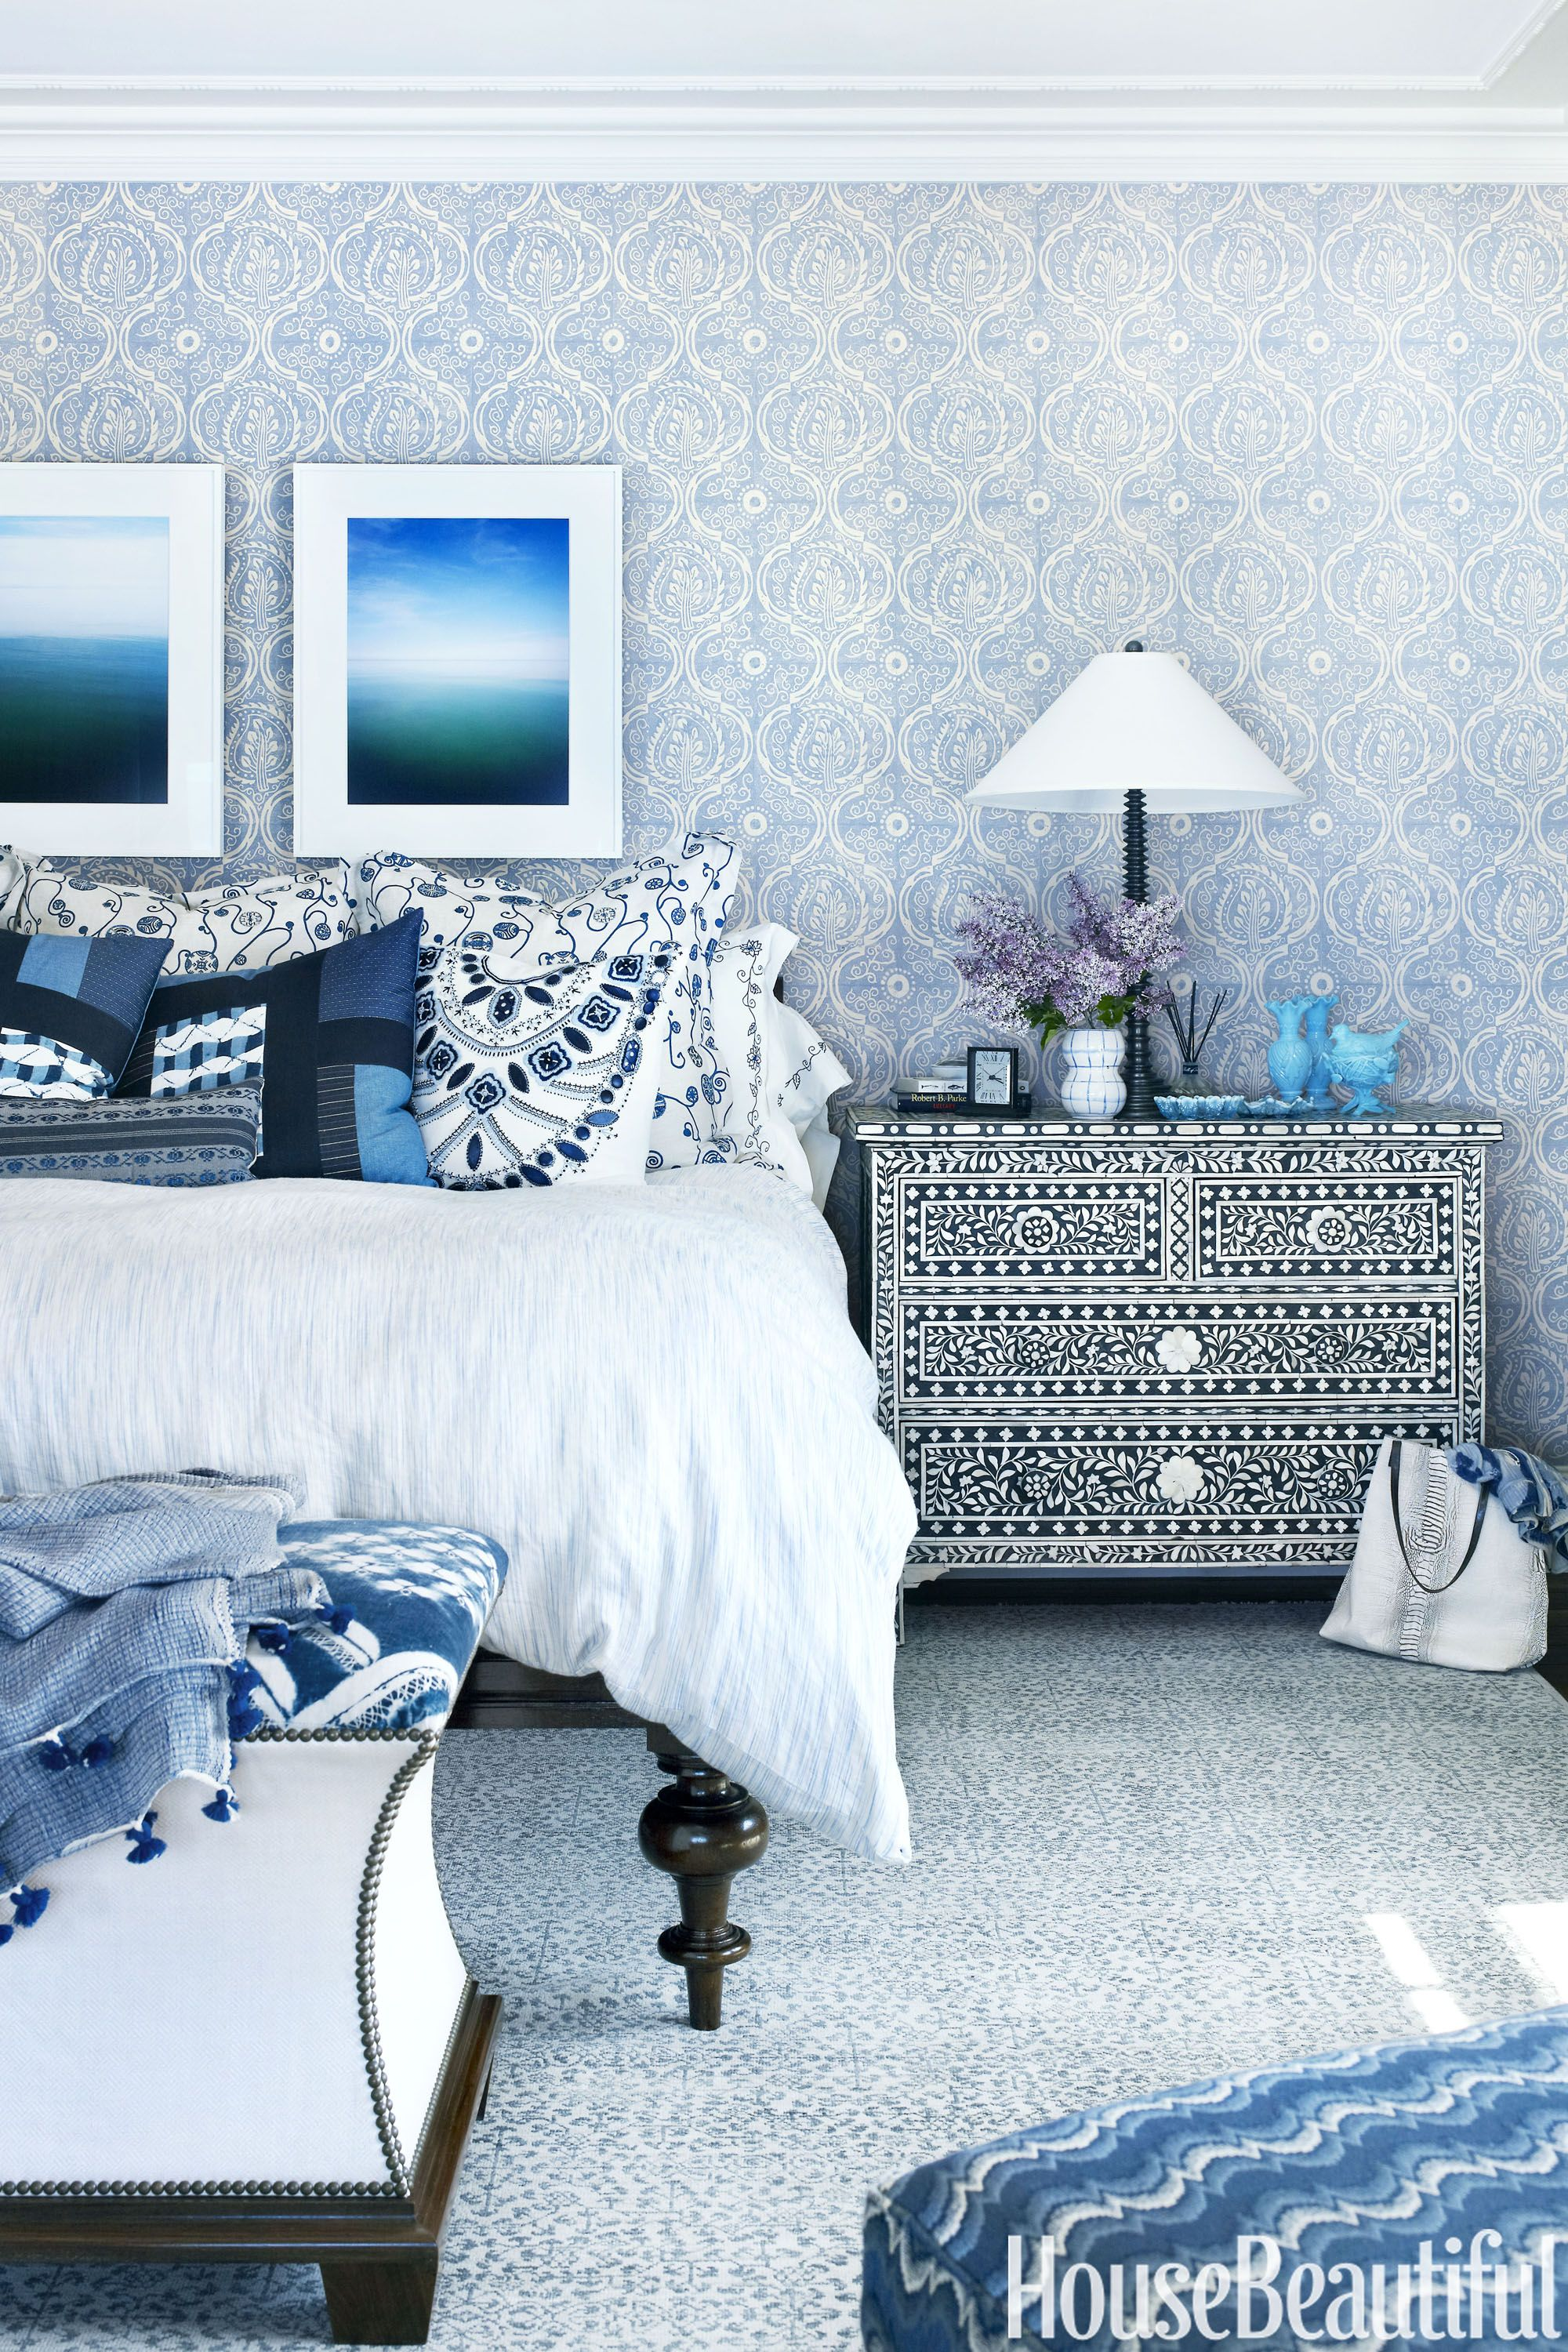 martin homer bedroom : modern decorating ideas for bedrooms - www.pureclipart.com